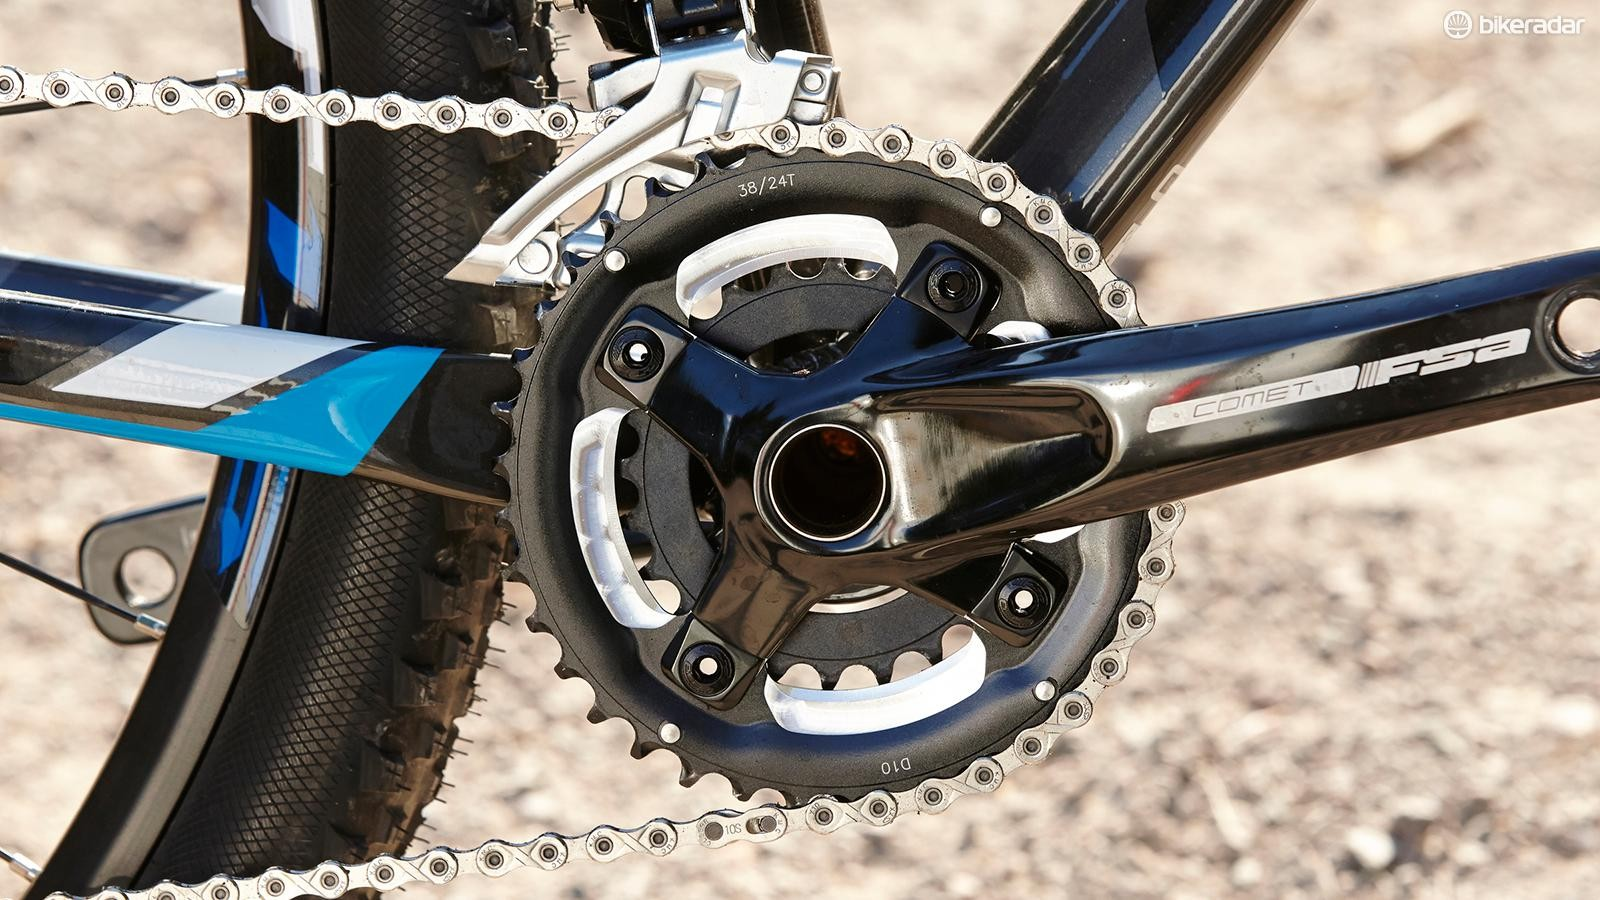 The double crankset is a real bonus at this price, where triples are still the norm